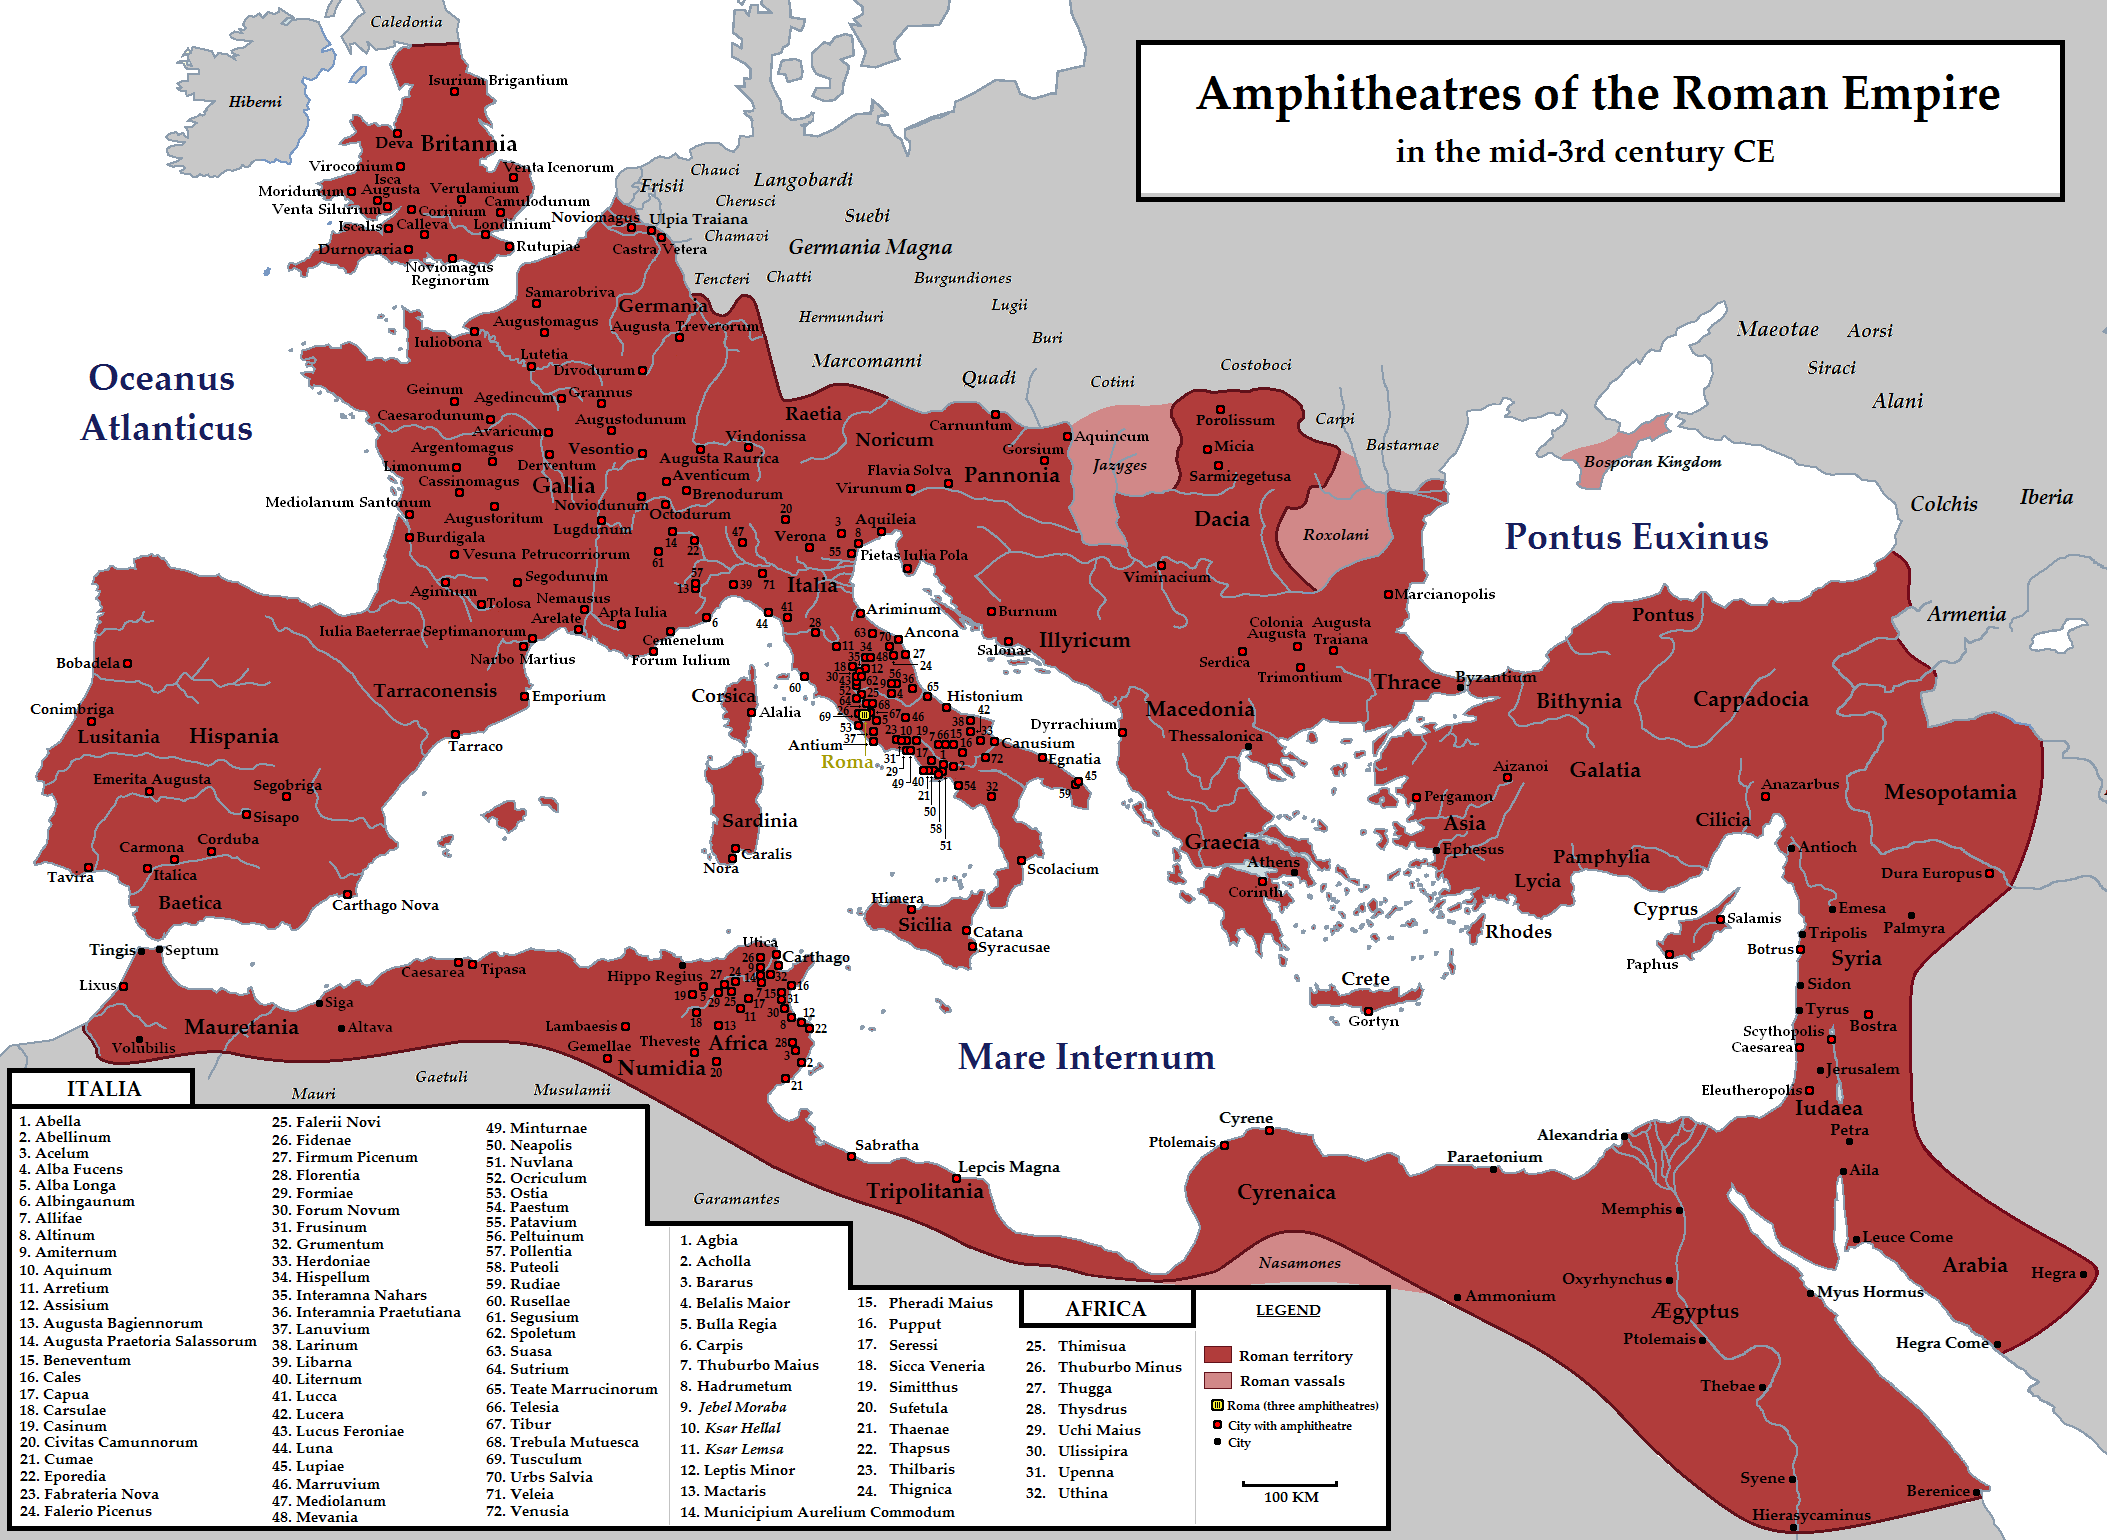 a history of the roman empire The cradle of european civilisation according to roman history, the city of rome was founded in 753 bc and became the capital of an emerging roman empire a bit over two centuries later.